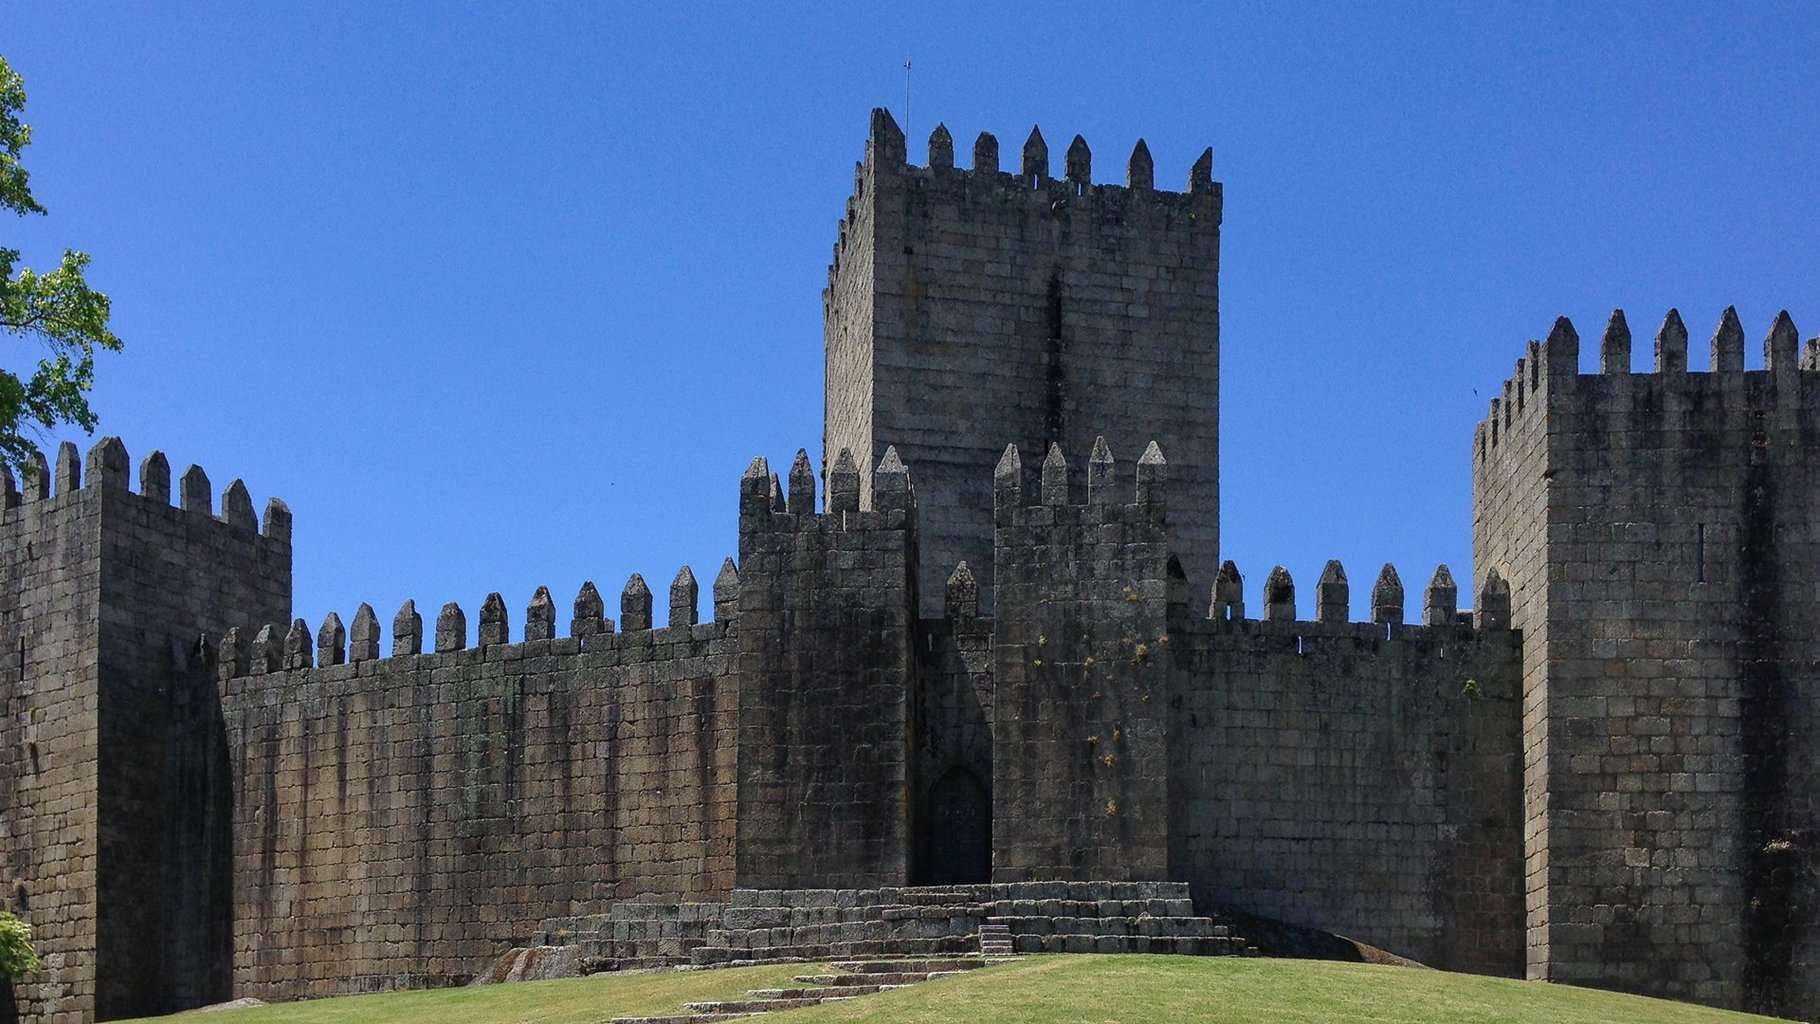 Imposing walls of the Medieval Castle of Guimarães in northern Portugal.